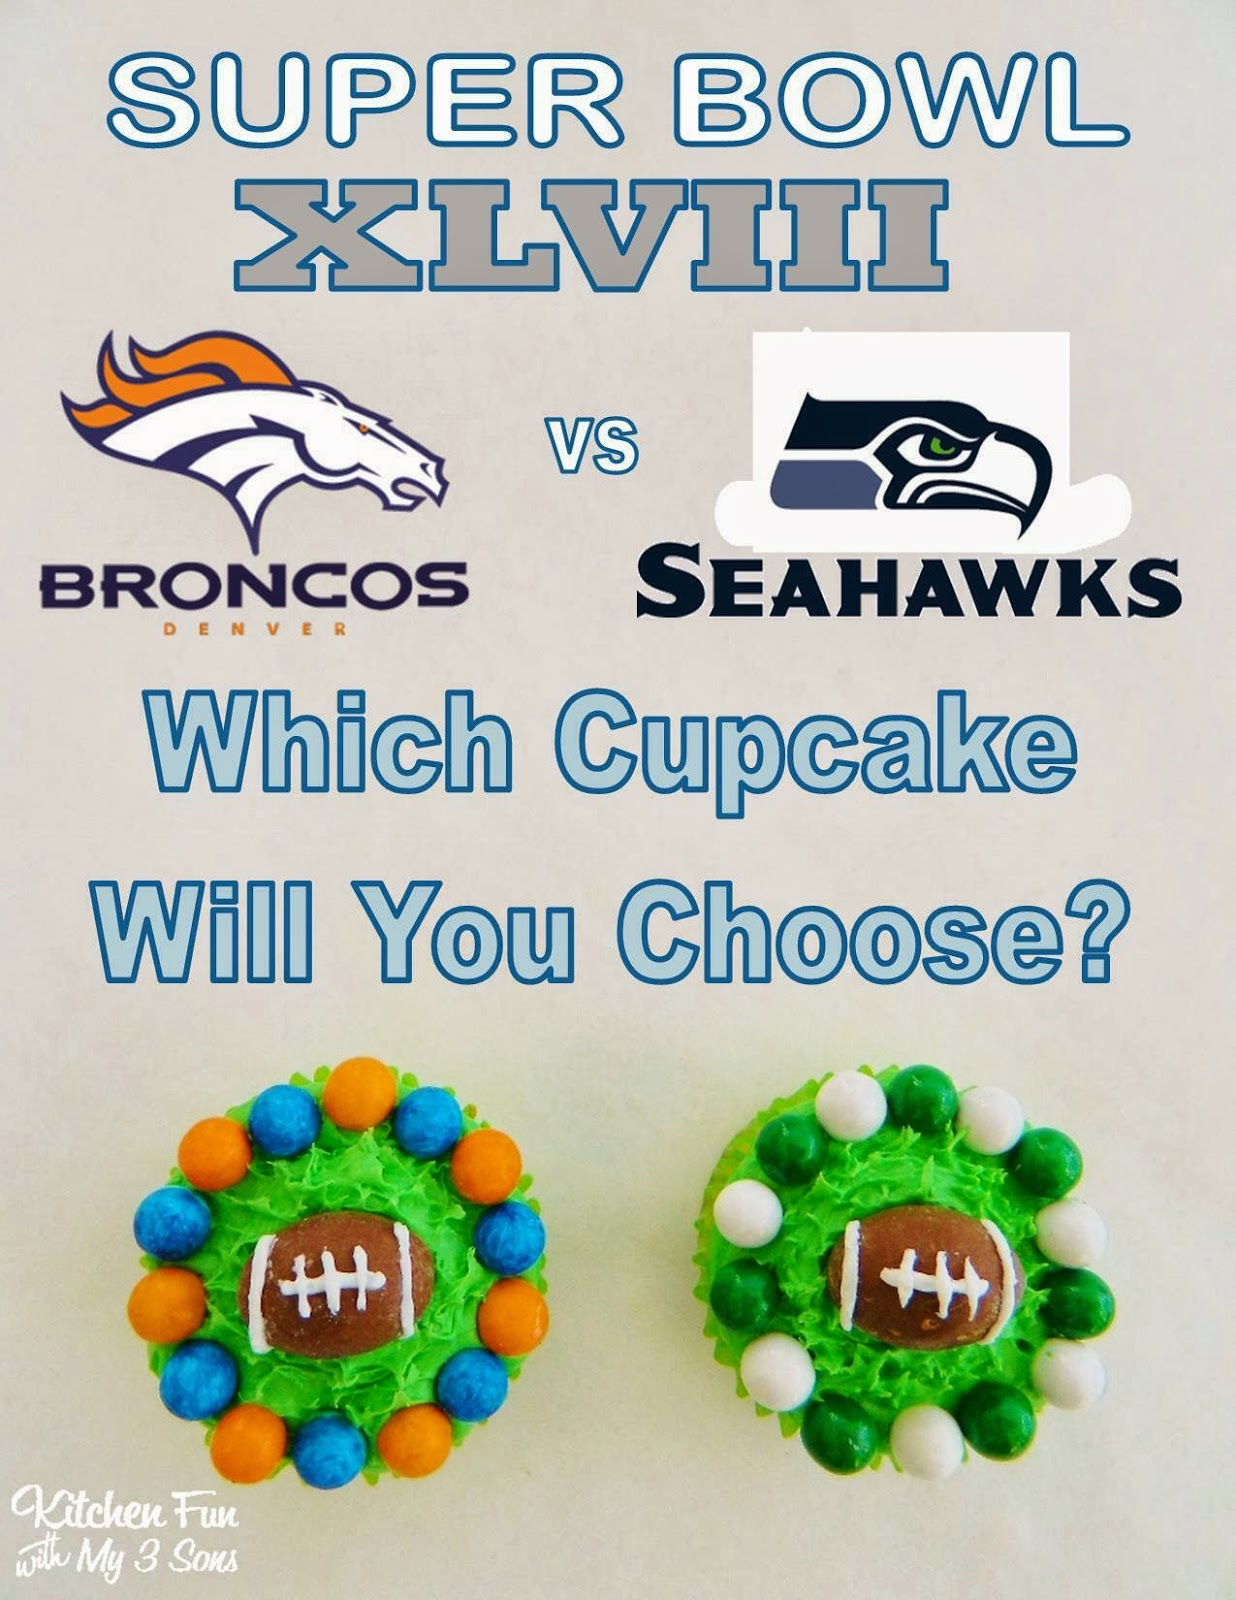 Pictures Making Fun of Seattle Seahawks to Make a Seattle Seahawks